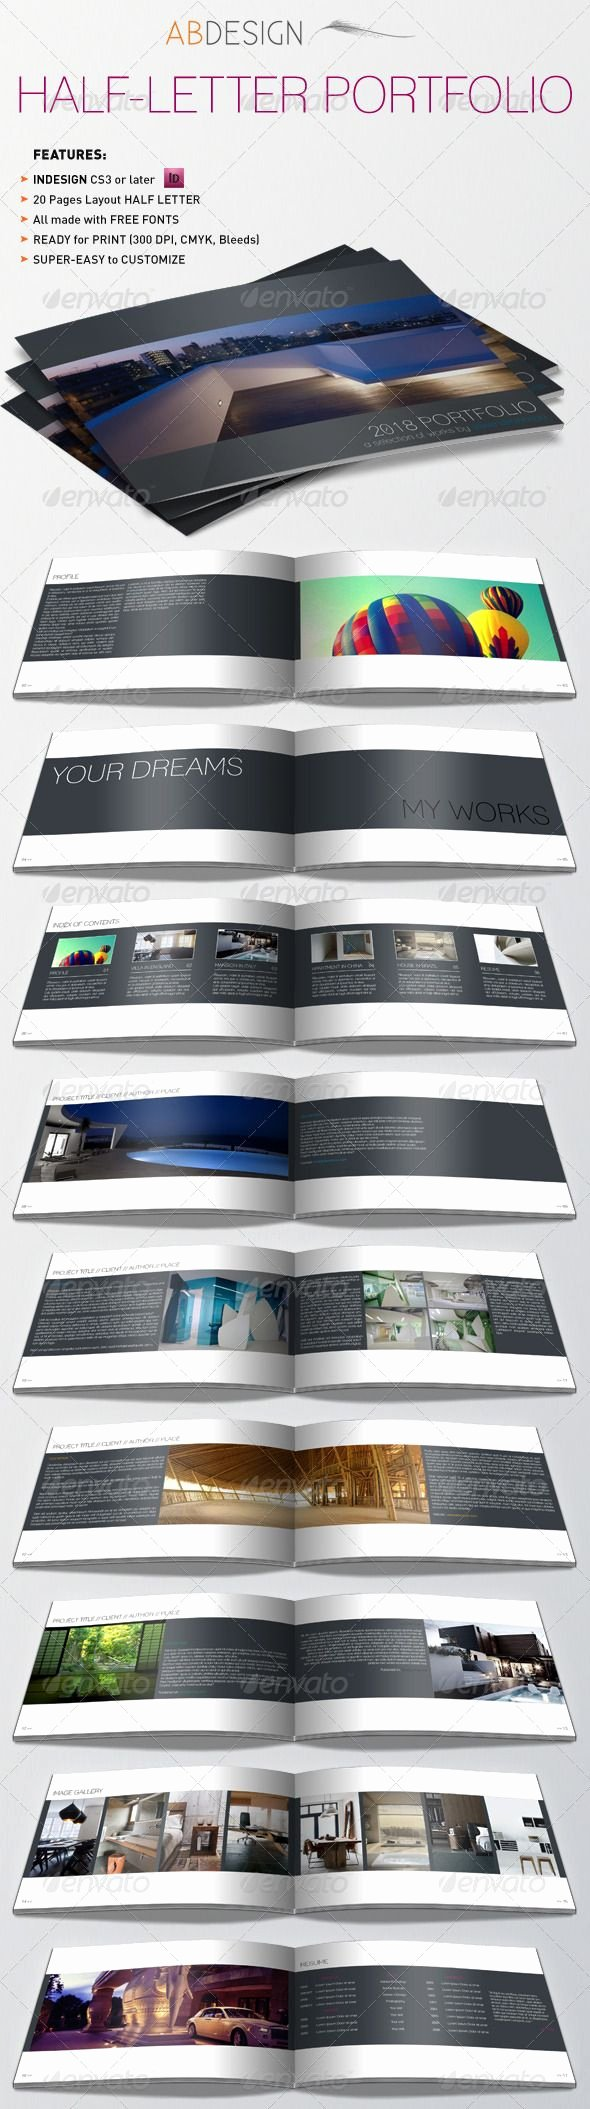 Architecture Portfolio Design Templates Best Of 25 Best Ideas About Architecture Portfolio Pdf On